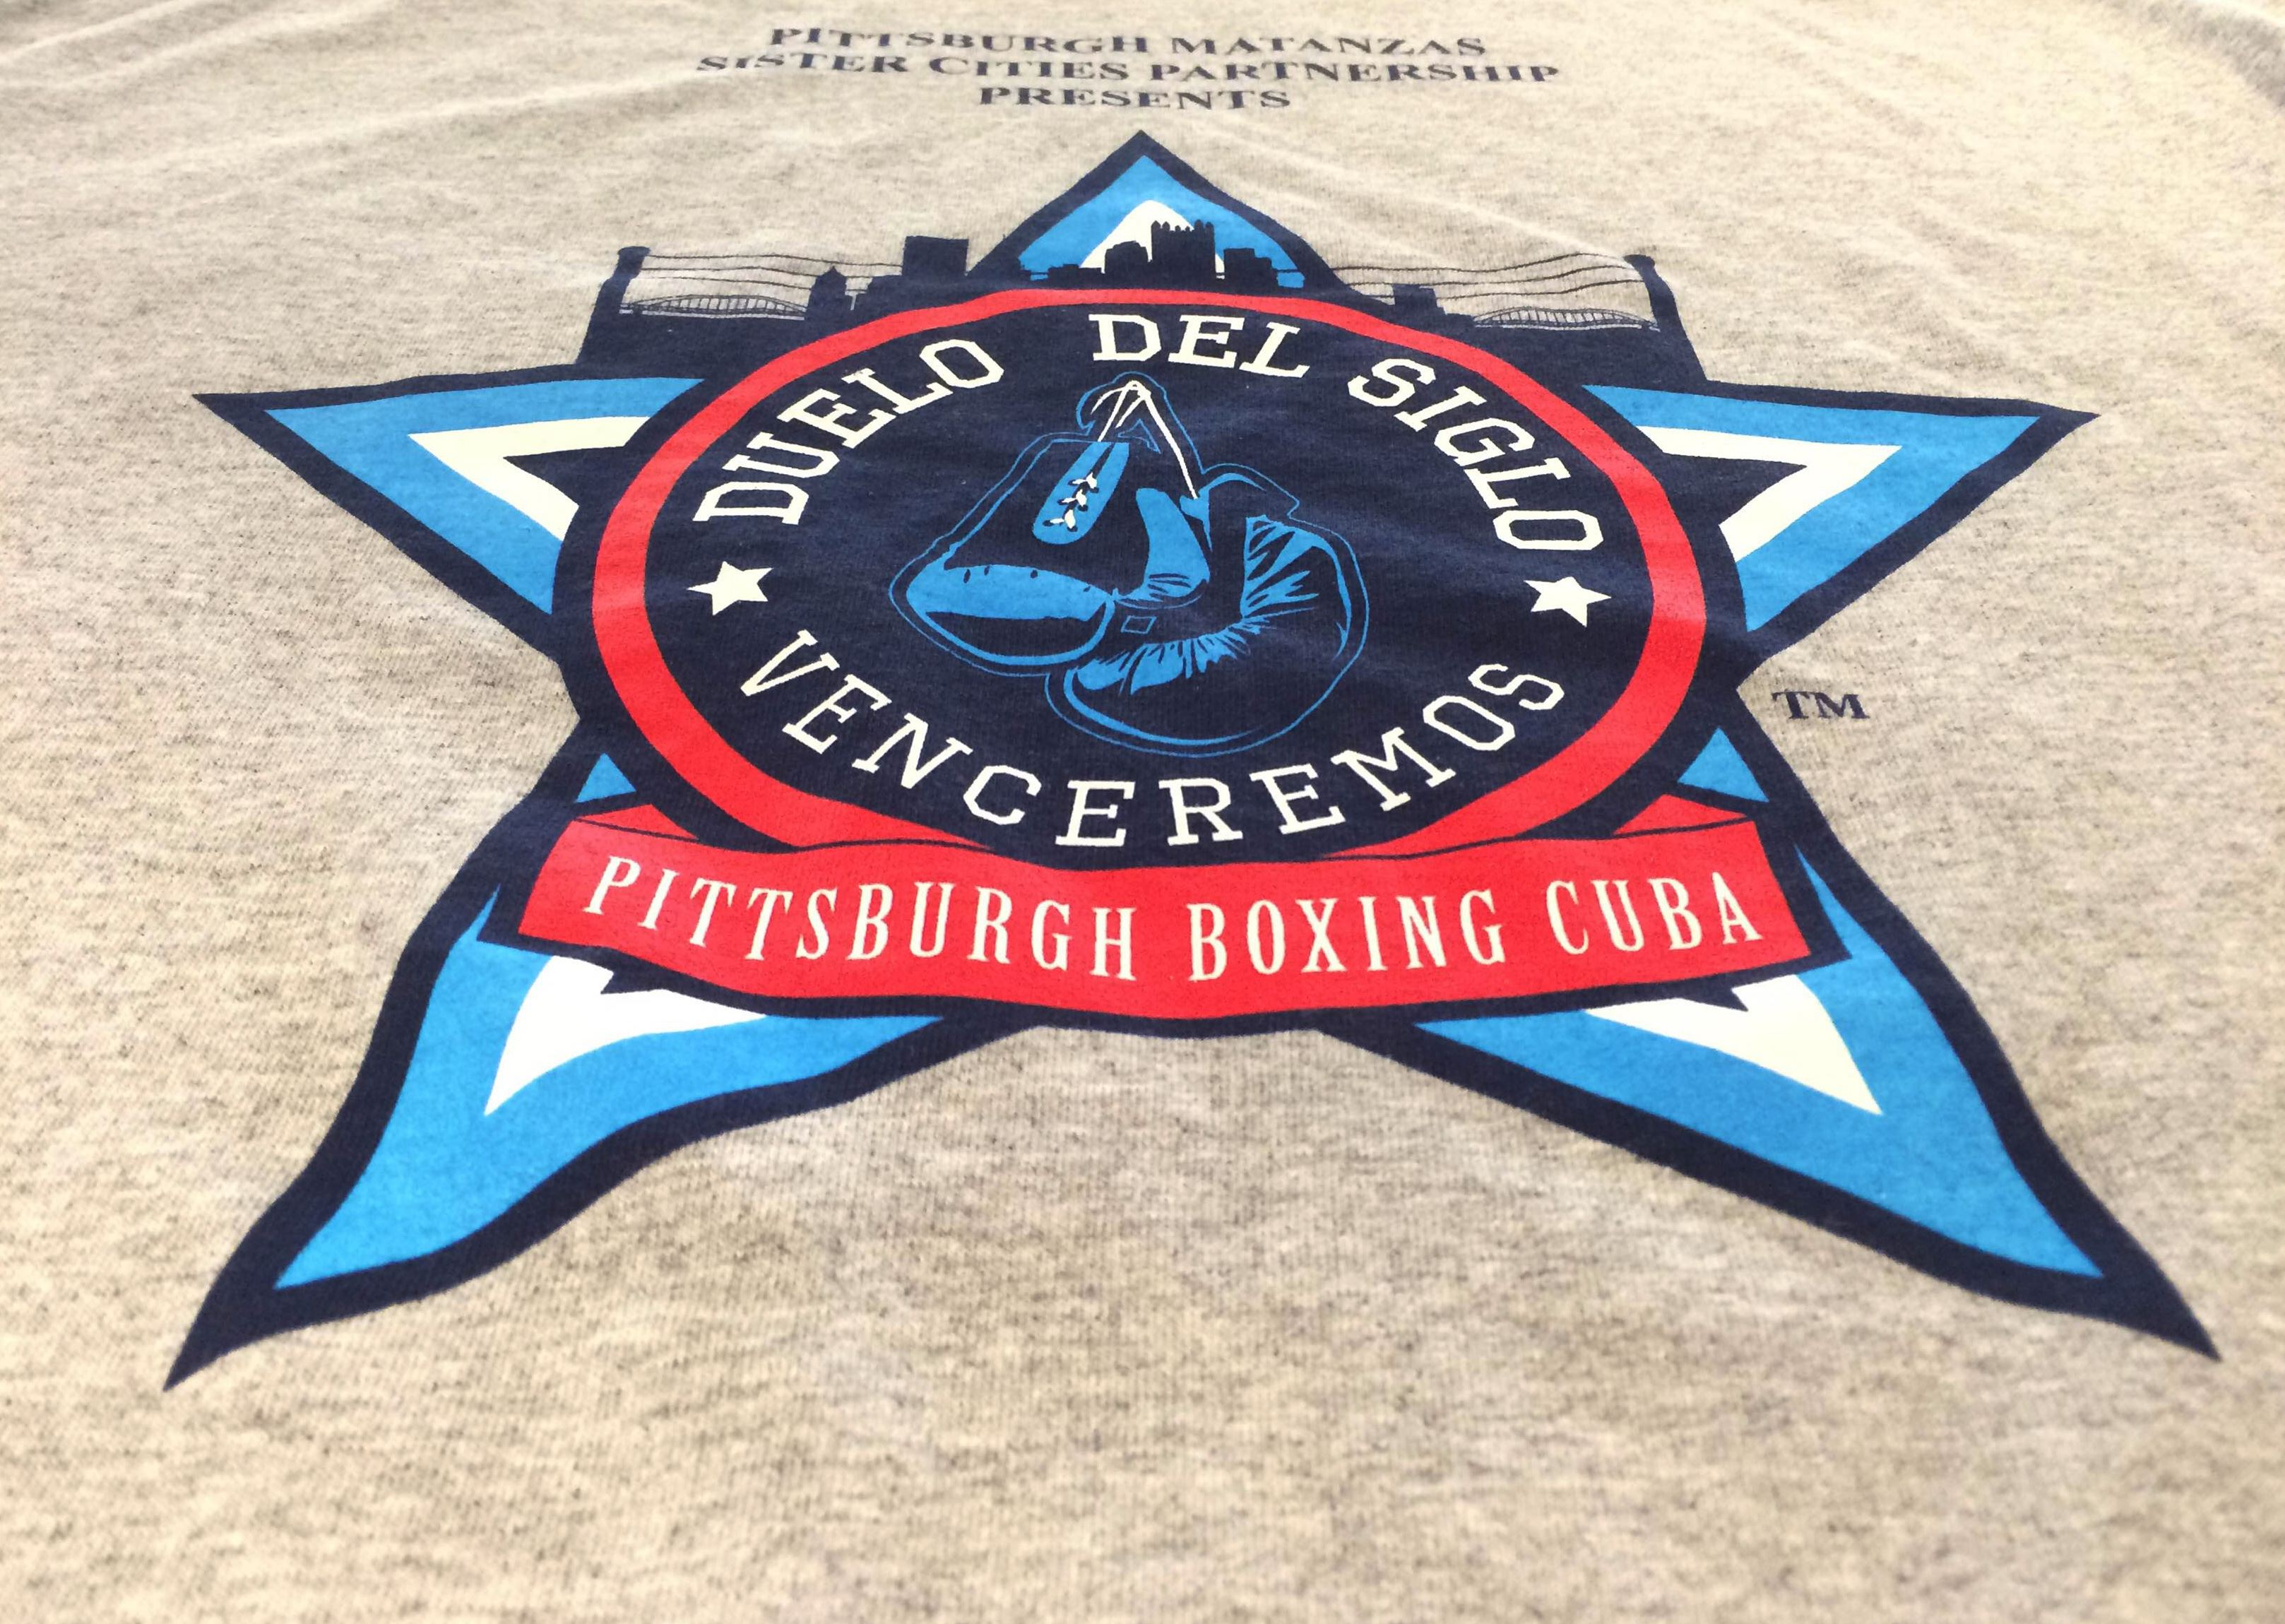 THE BEST 10 Boxing in Pittsburgh, PA - Yelp